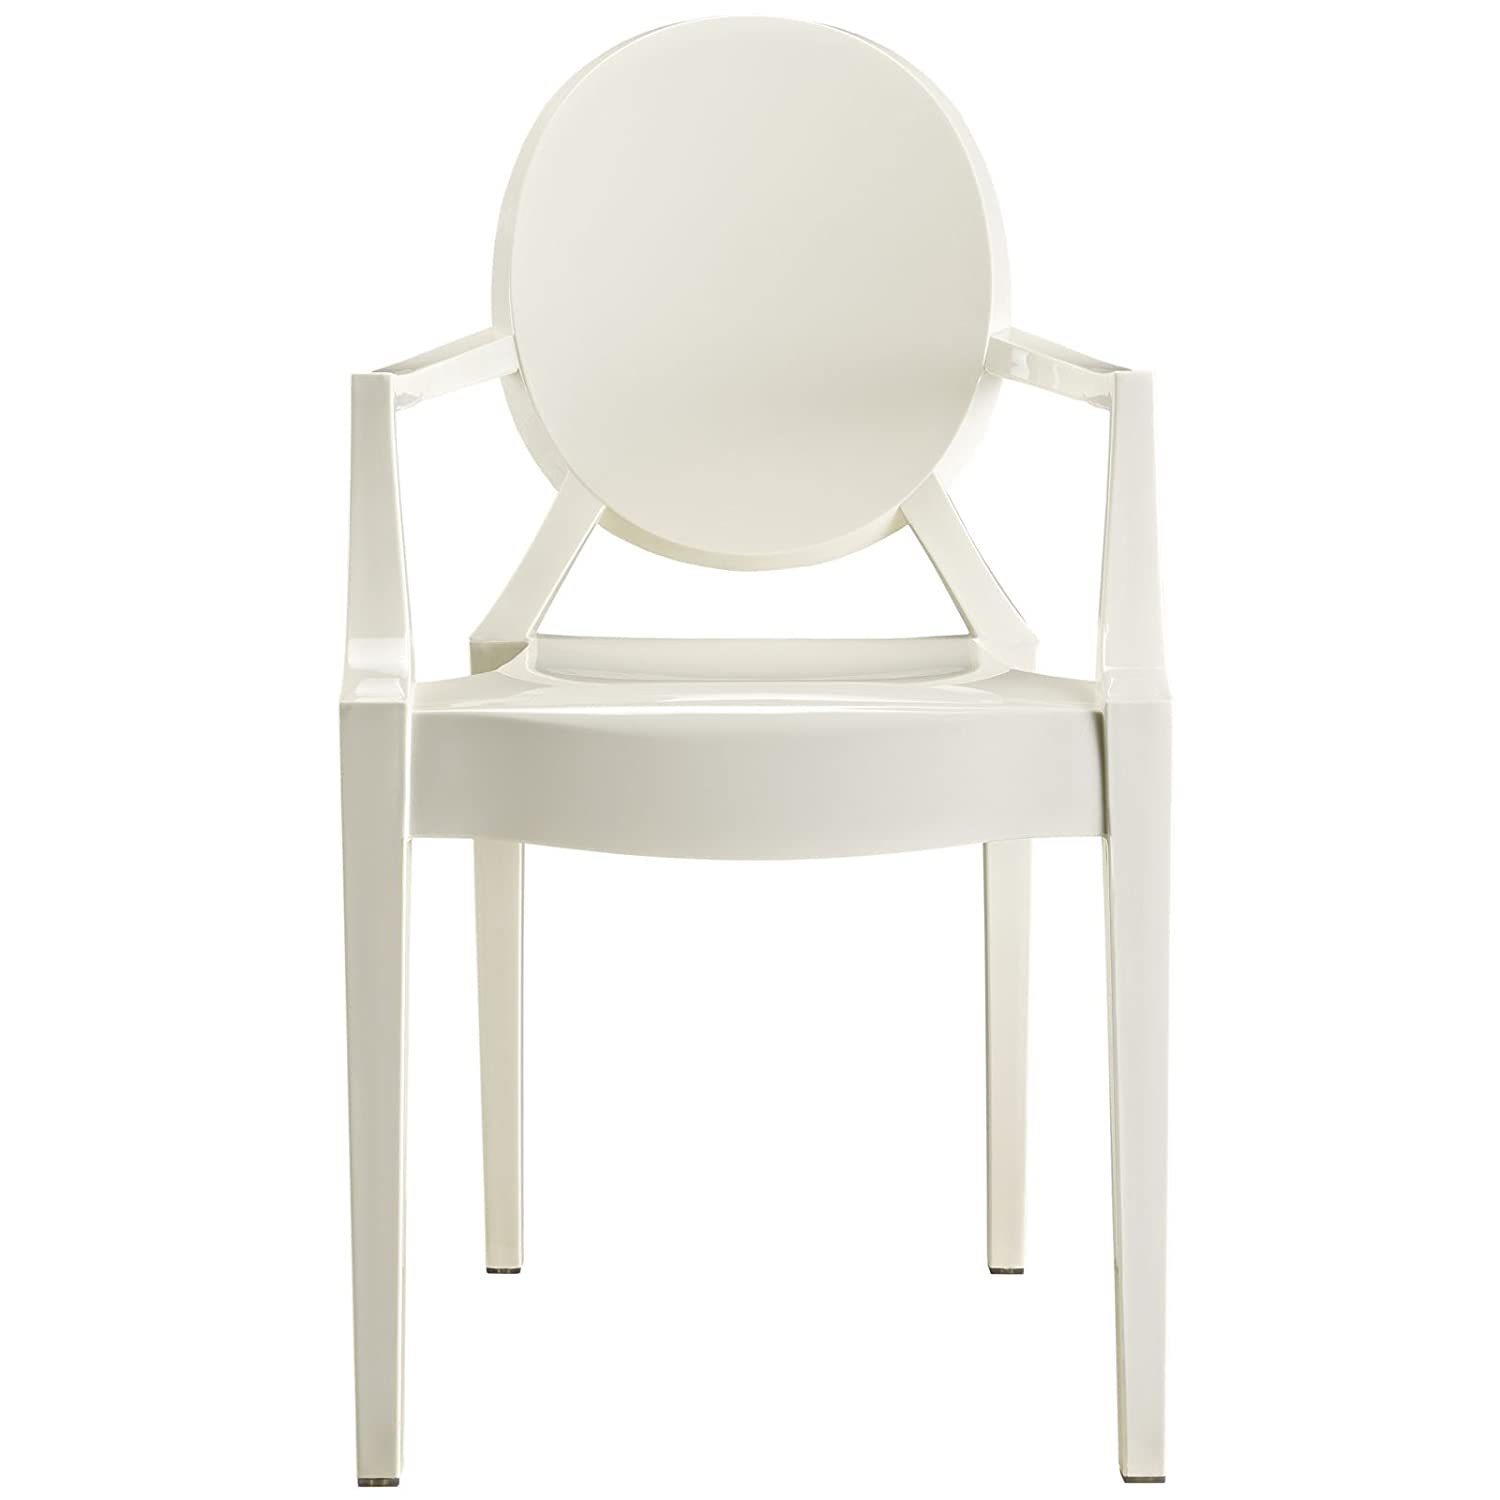 Beautiful Amazon.com   Modway Casper Modern Acrylic Dining Armchair In White   Chairs